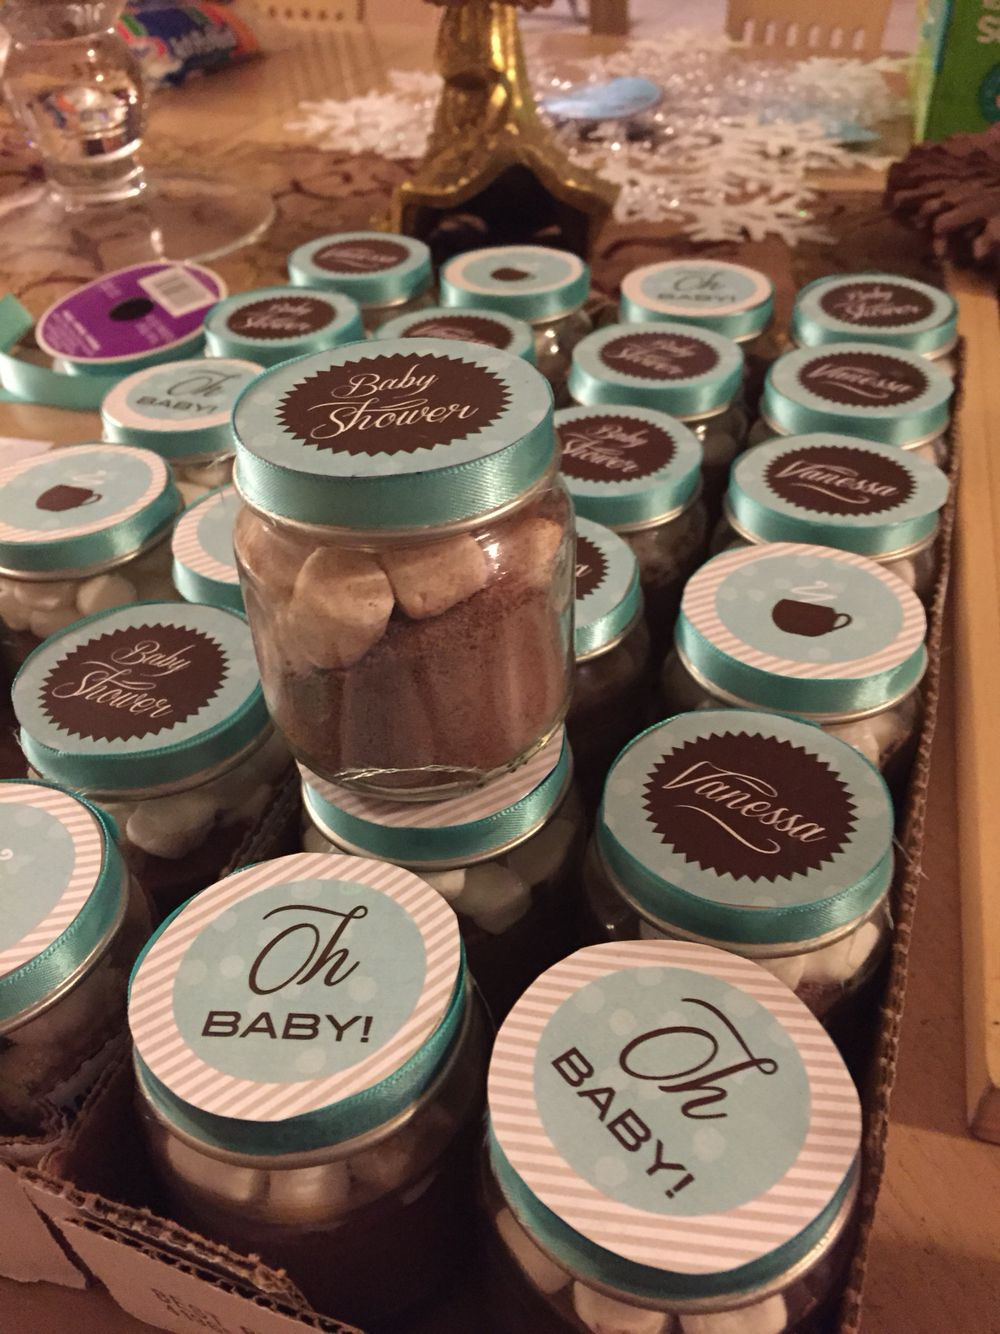 Baby Shower Favors Hot Chocolate baby shower favors. gerber bottles filled with hot chocolate mix and